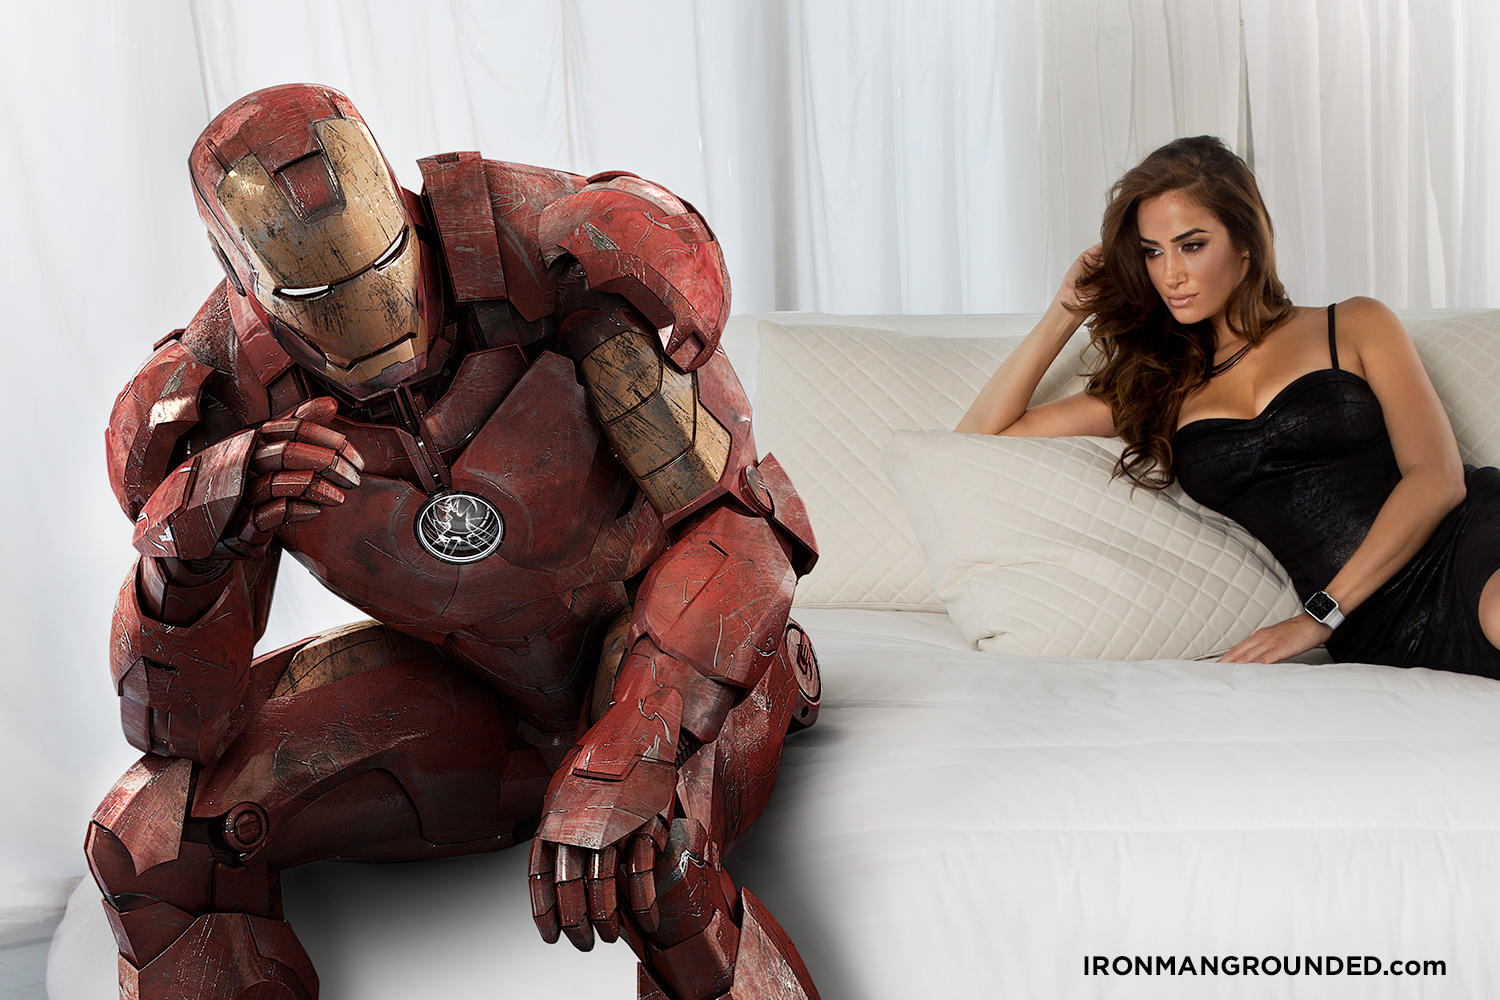 iron_man_grounded_in_bed_donna_feldman_closeup